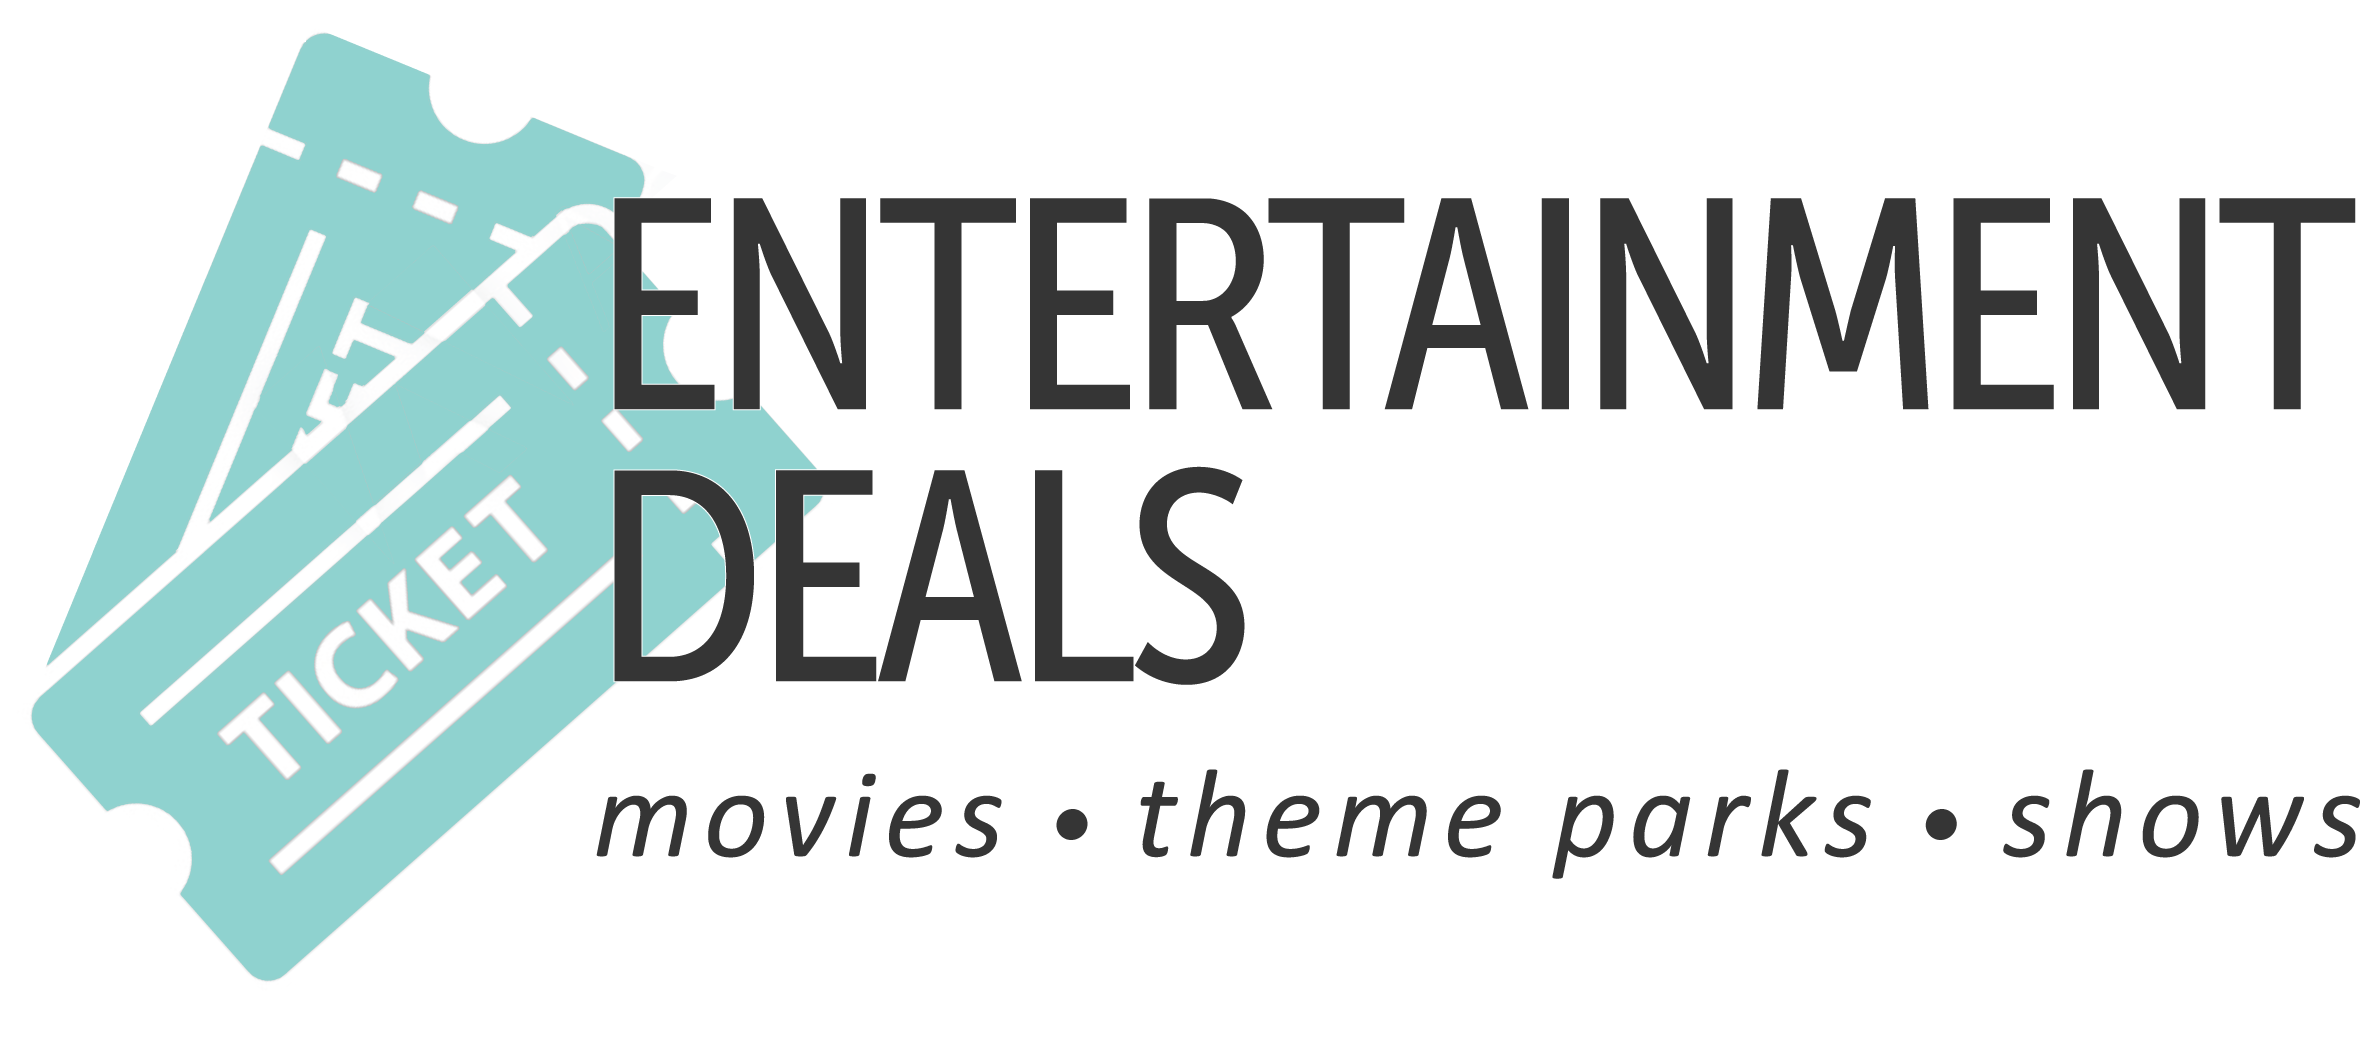 Entertainment Deals